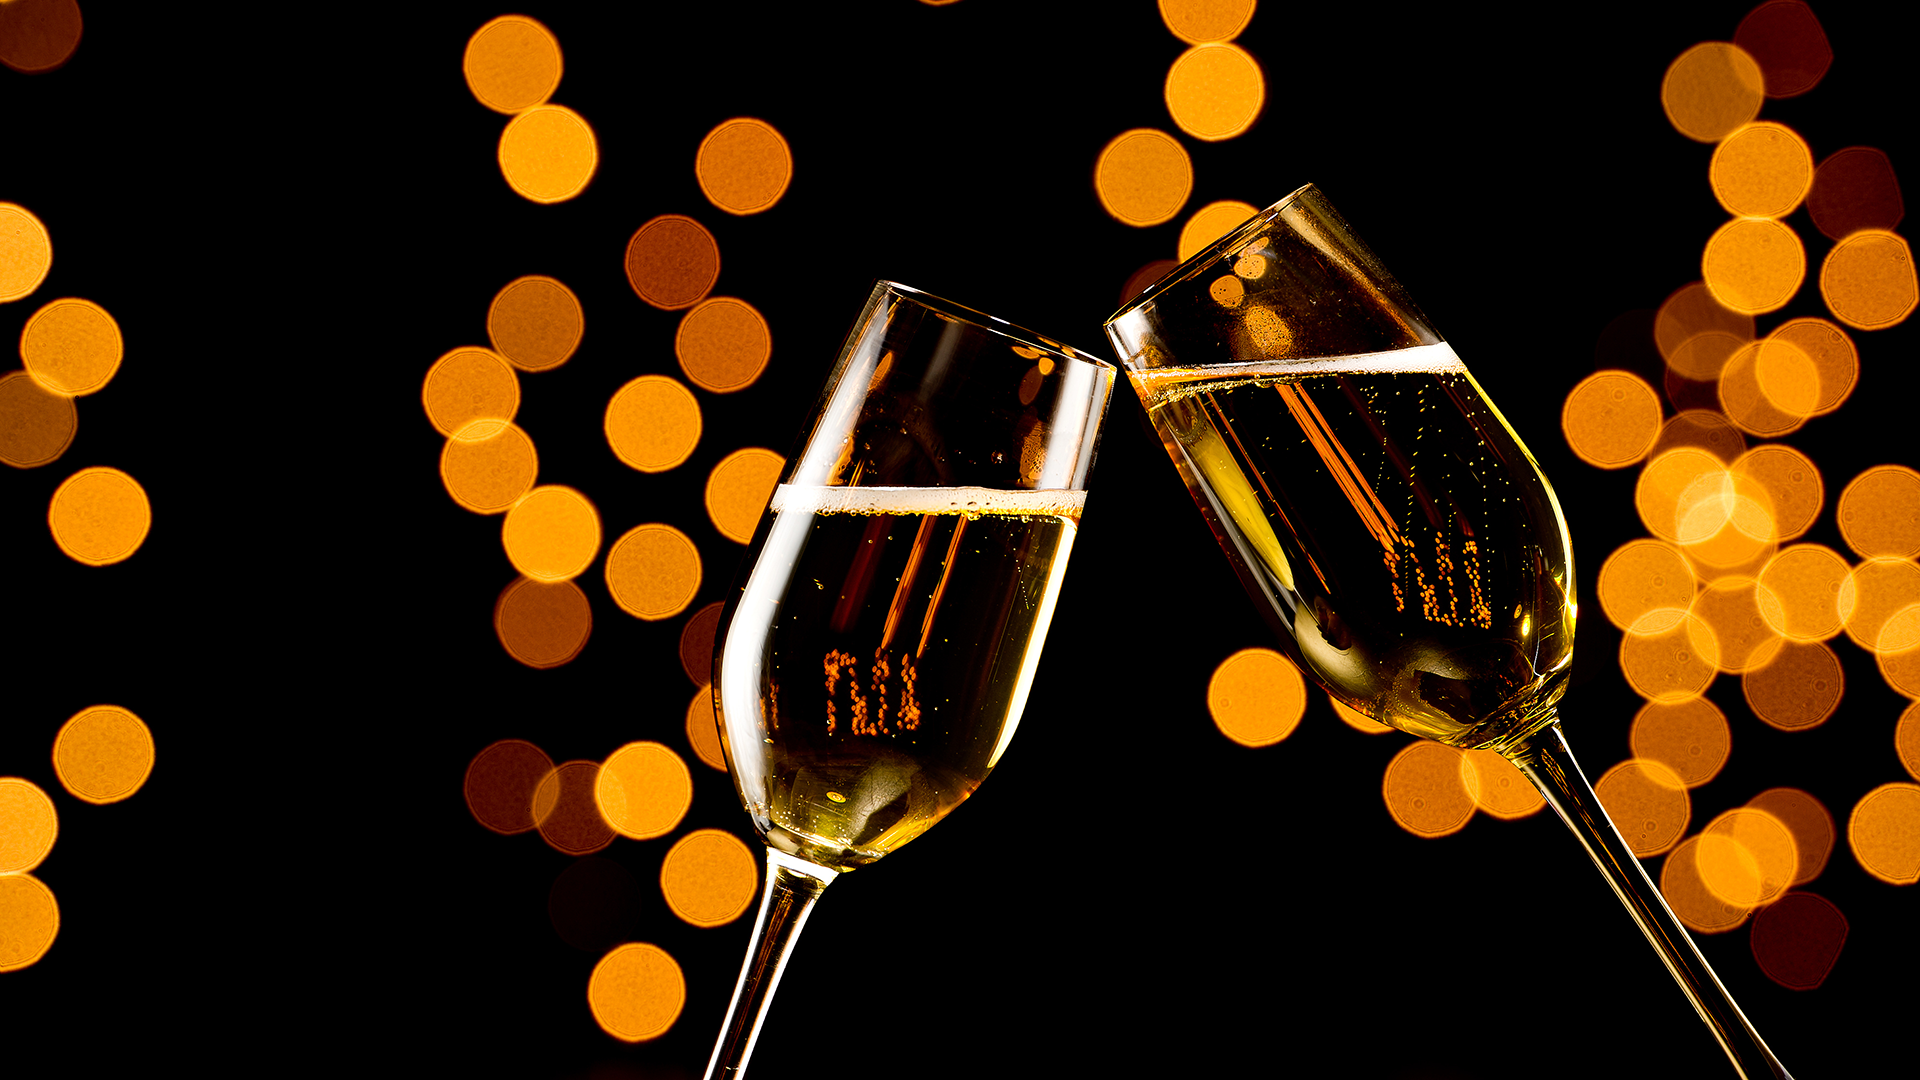 Celebrate-Search-Champagne-1920x1080